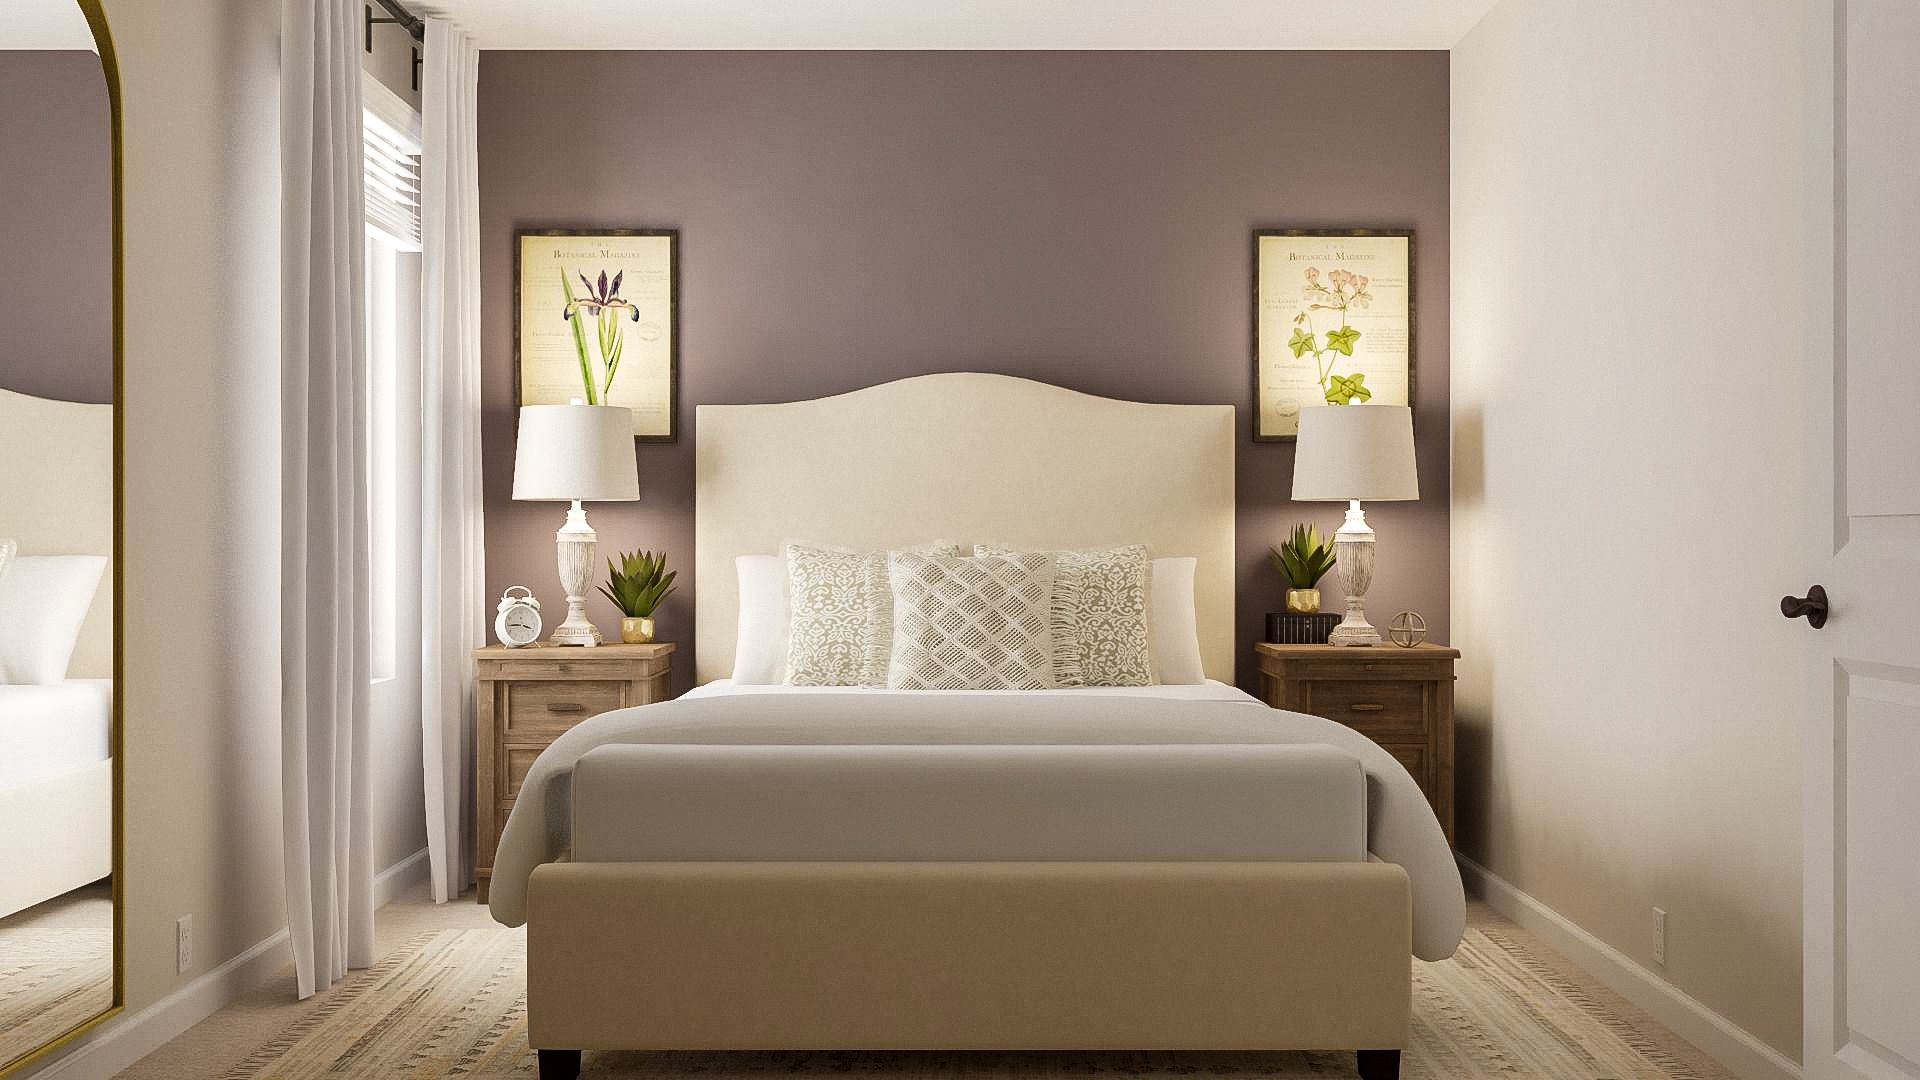 Bedroom featured in the Mesa Verde By LGI Homes in Greeley, CO